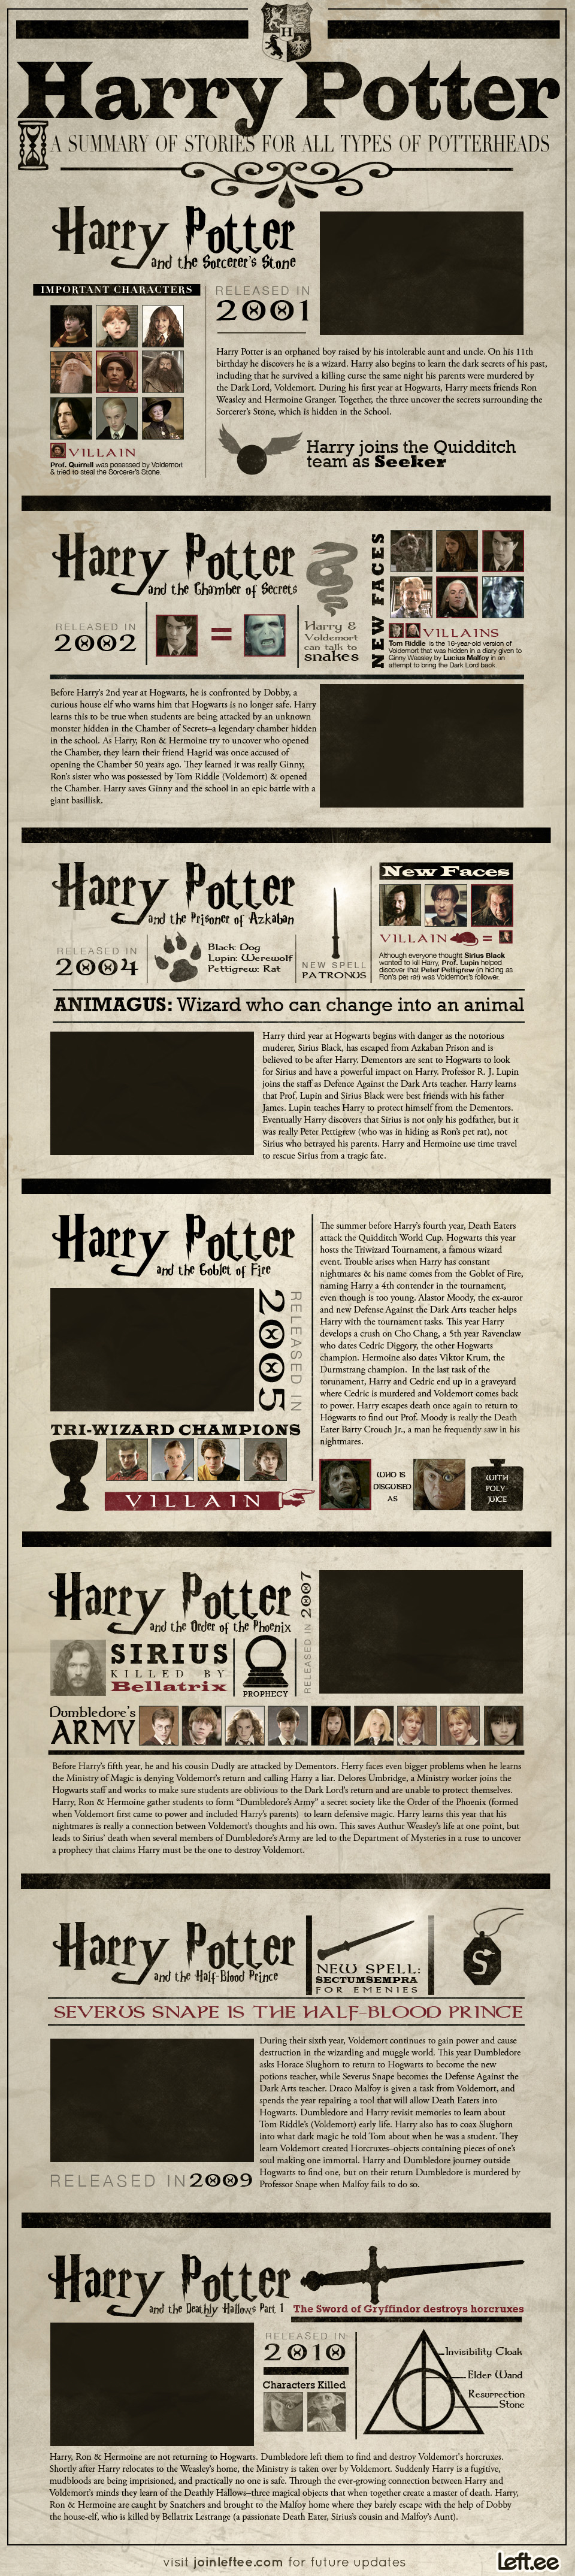 Harry Potter stories